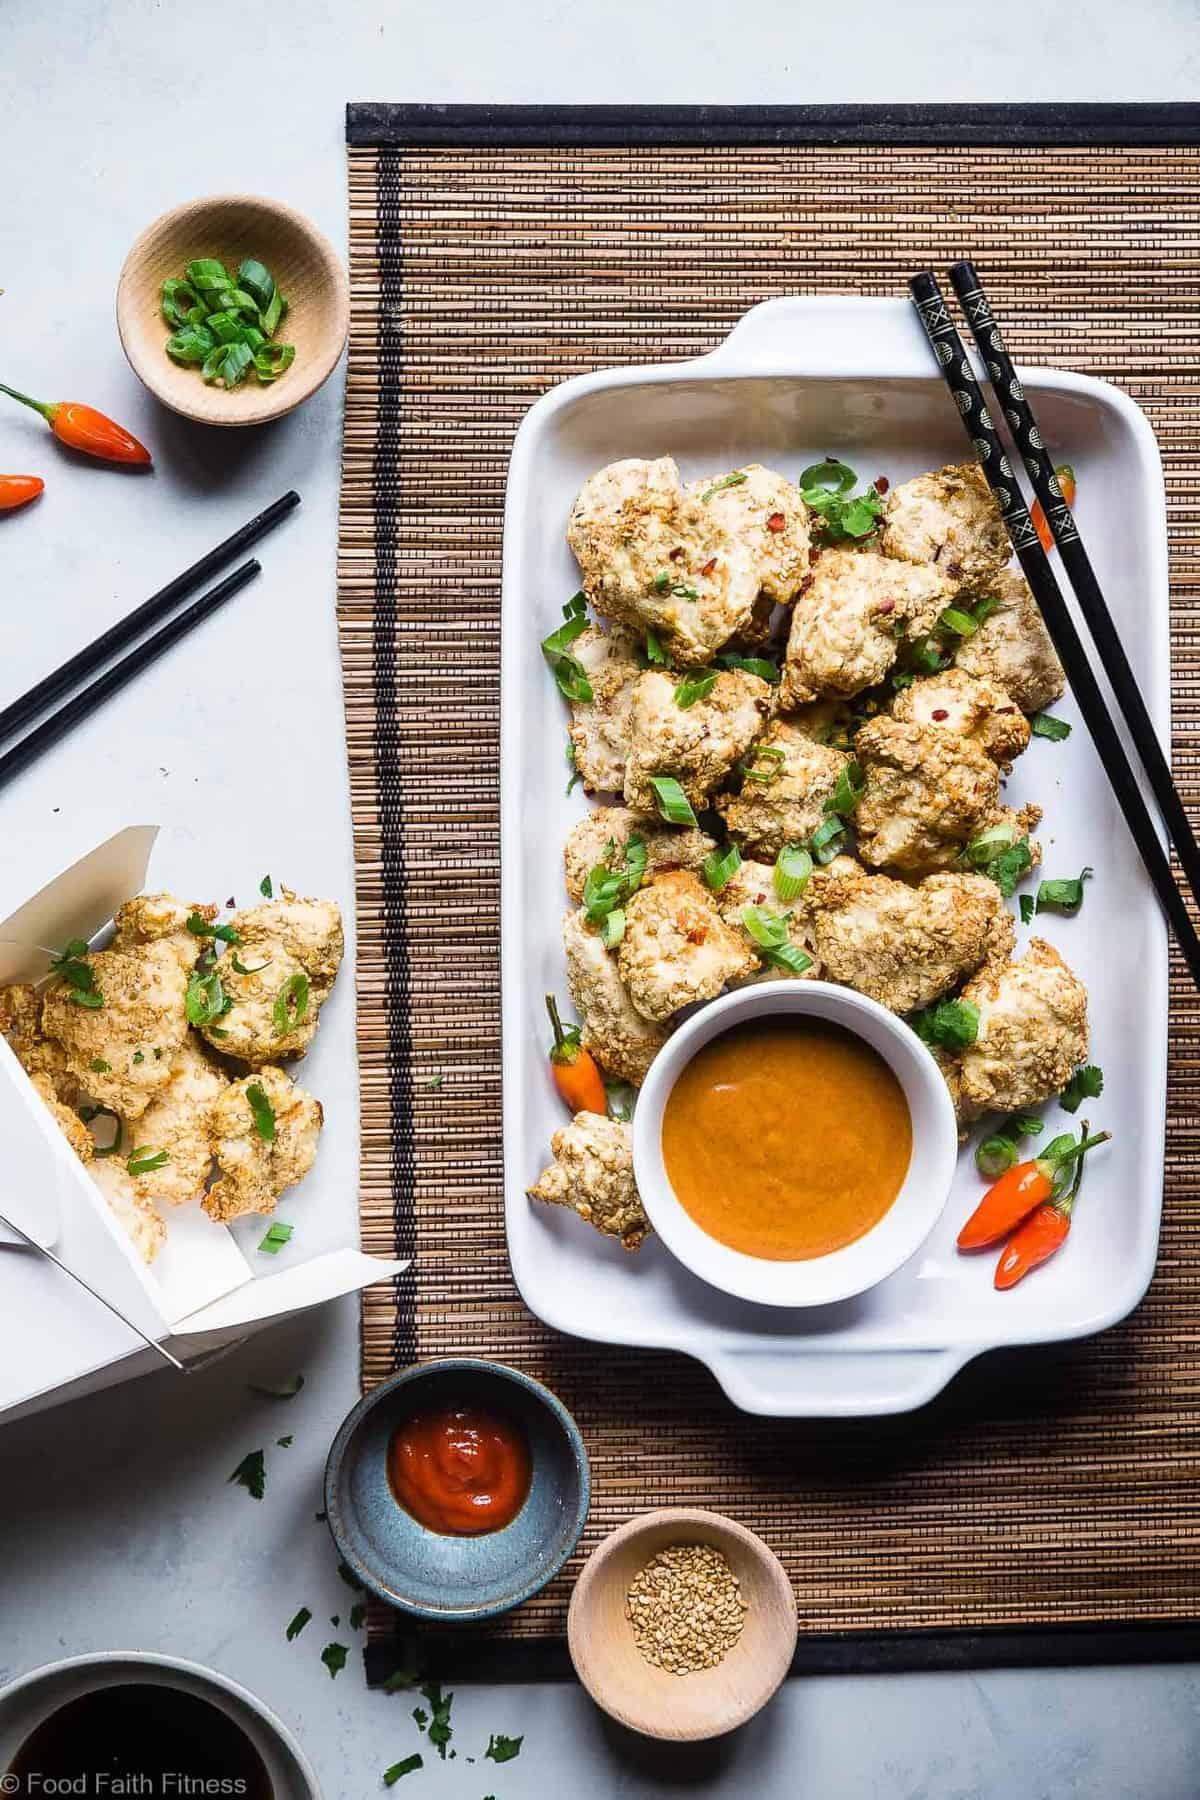 Low Carb Keto Paleo Baked Chicken Nuggets - These baked chicken nuggets areare cooked in the air fryer and have an Asian twist! A healthy, whole30, gluten free, family-friendly weeknight dinner that even picky eaters will love! Oven baked option too! | #Foodfaithfitness | #Paleo #Whole30 #Lowcarb #Glutenfree #Keto